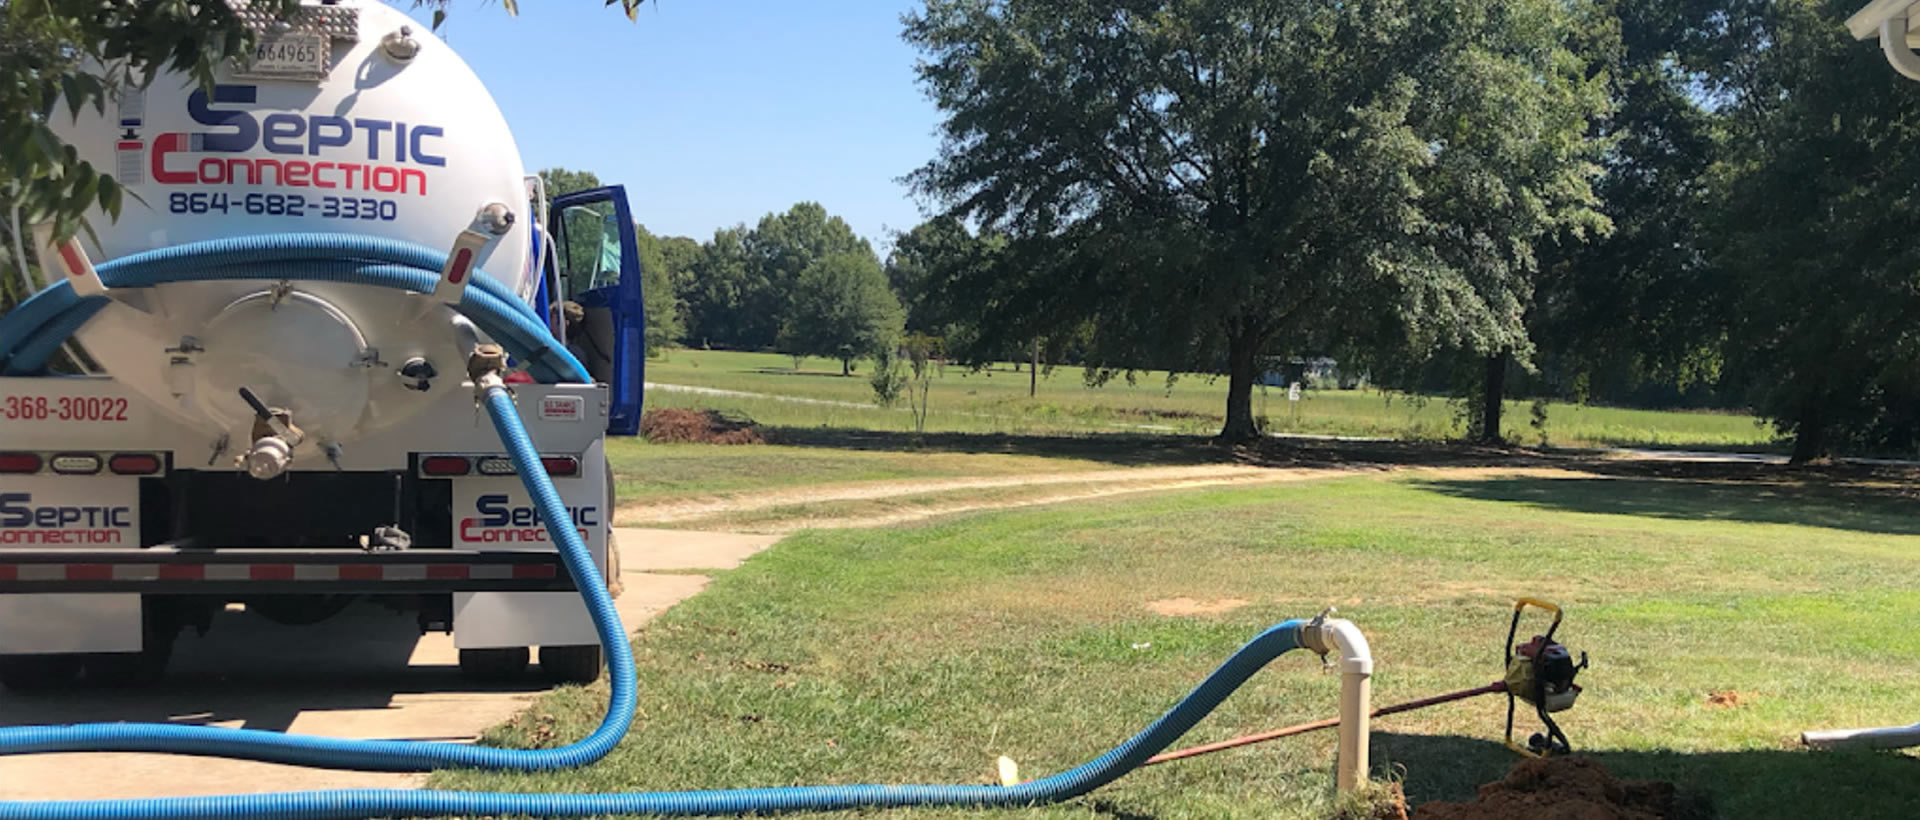 Septic Installation in Ninety Six, SC